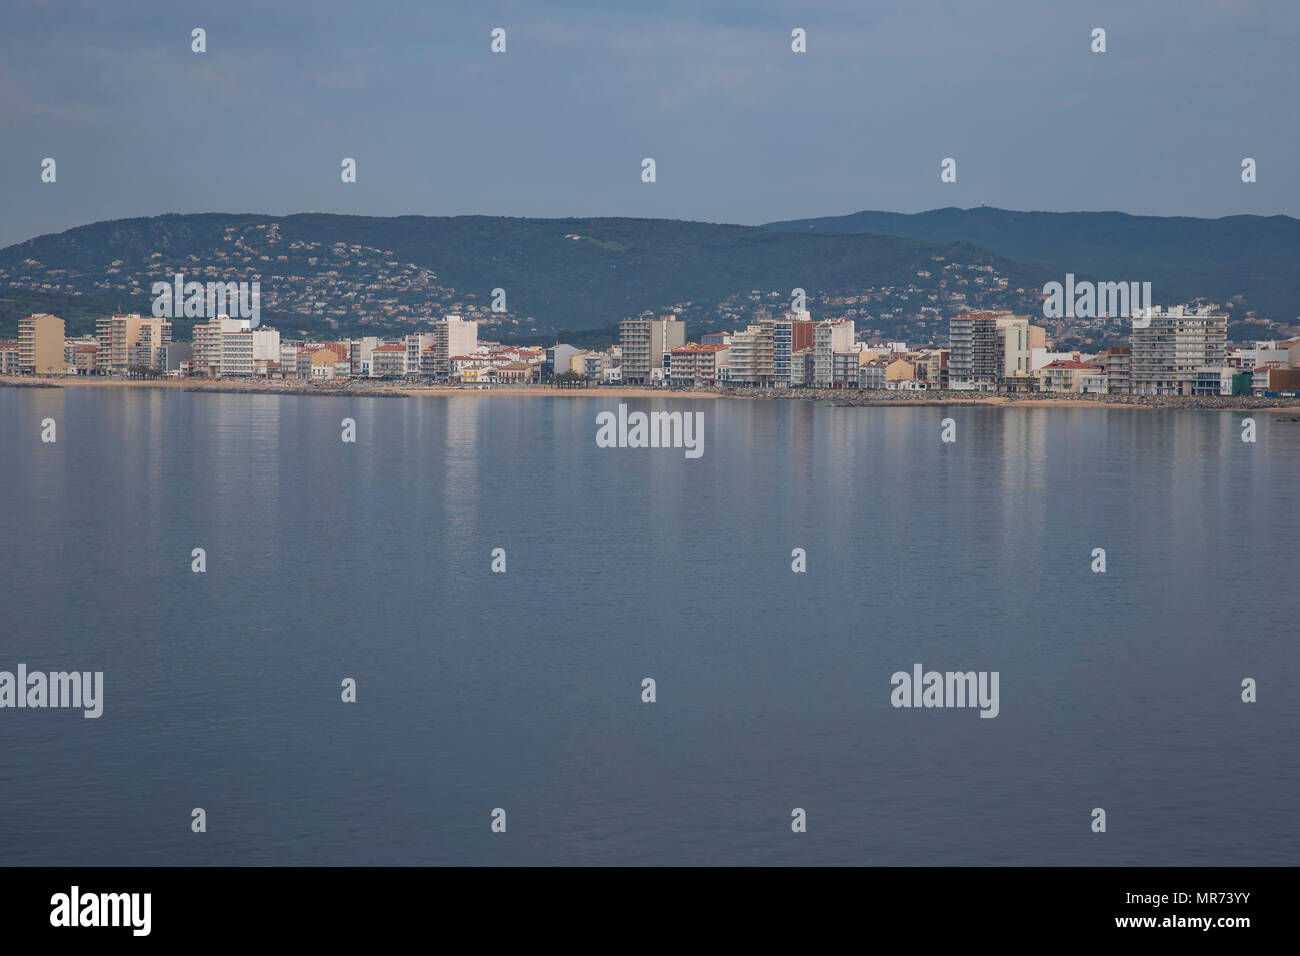 Panoramic view of the Spanish seaside resort of Palamos seen from a cruise ship - Stock Image